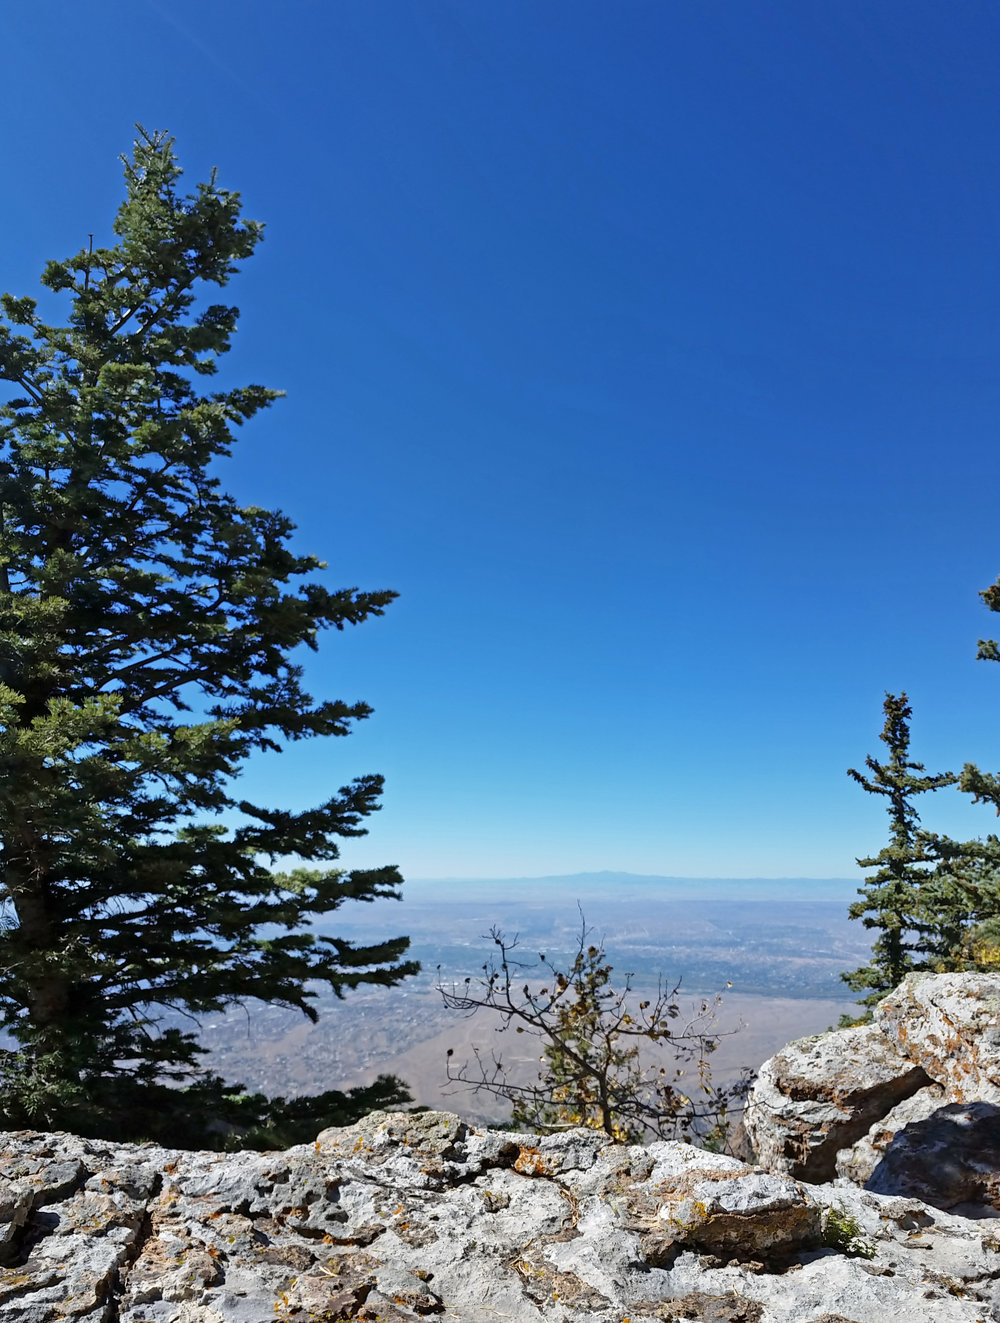 Here is my view from 10,600 feet up, atop the Sandia Crest overlooking Albuquerque and the Rio Grande.  Far out on the western horizon, the San Mateos float like a vision.